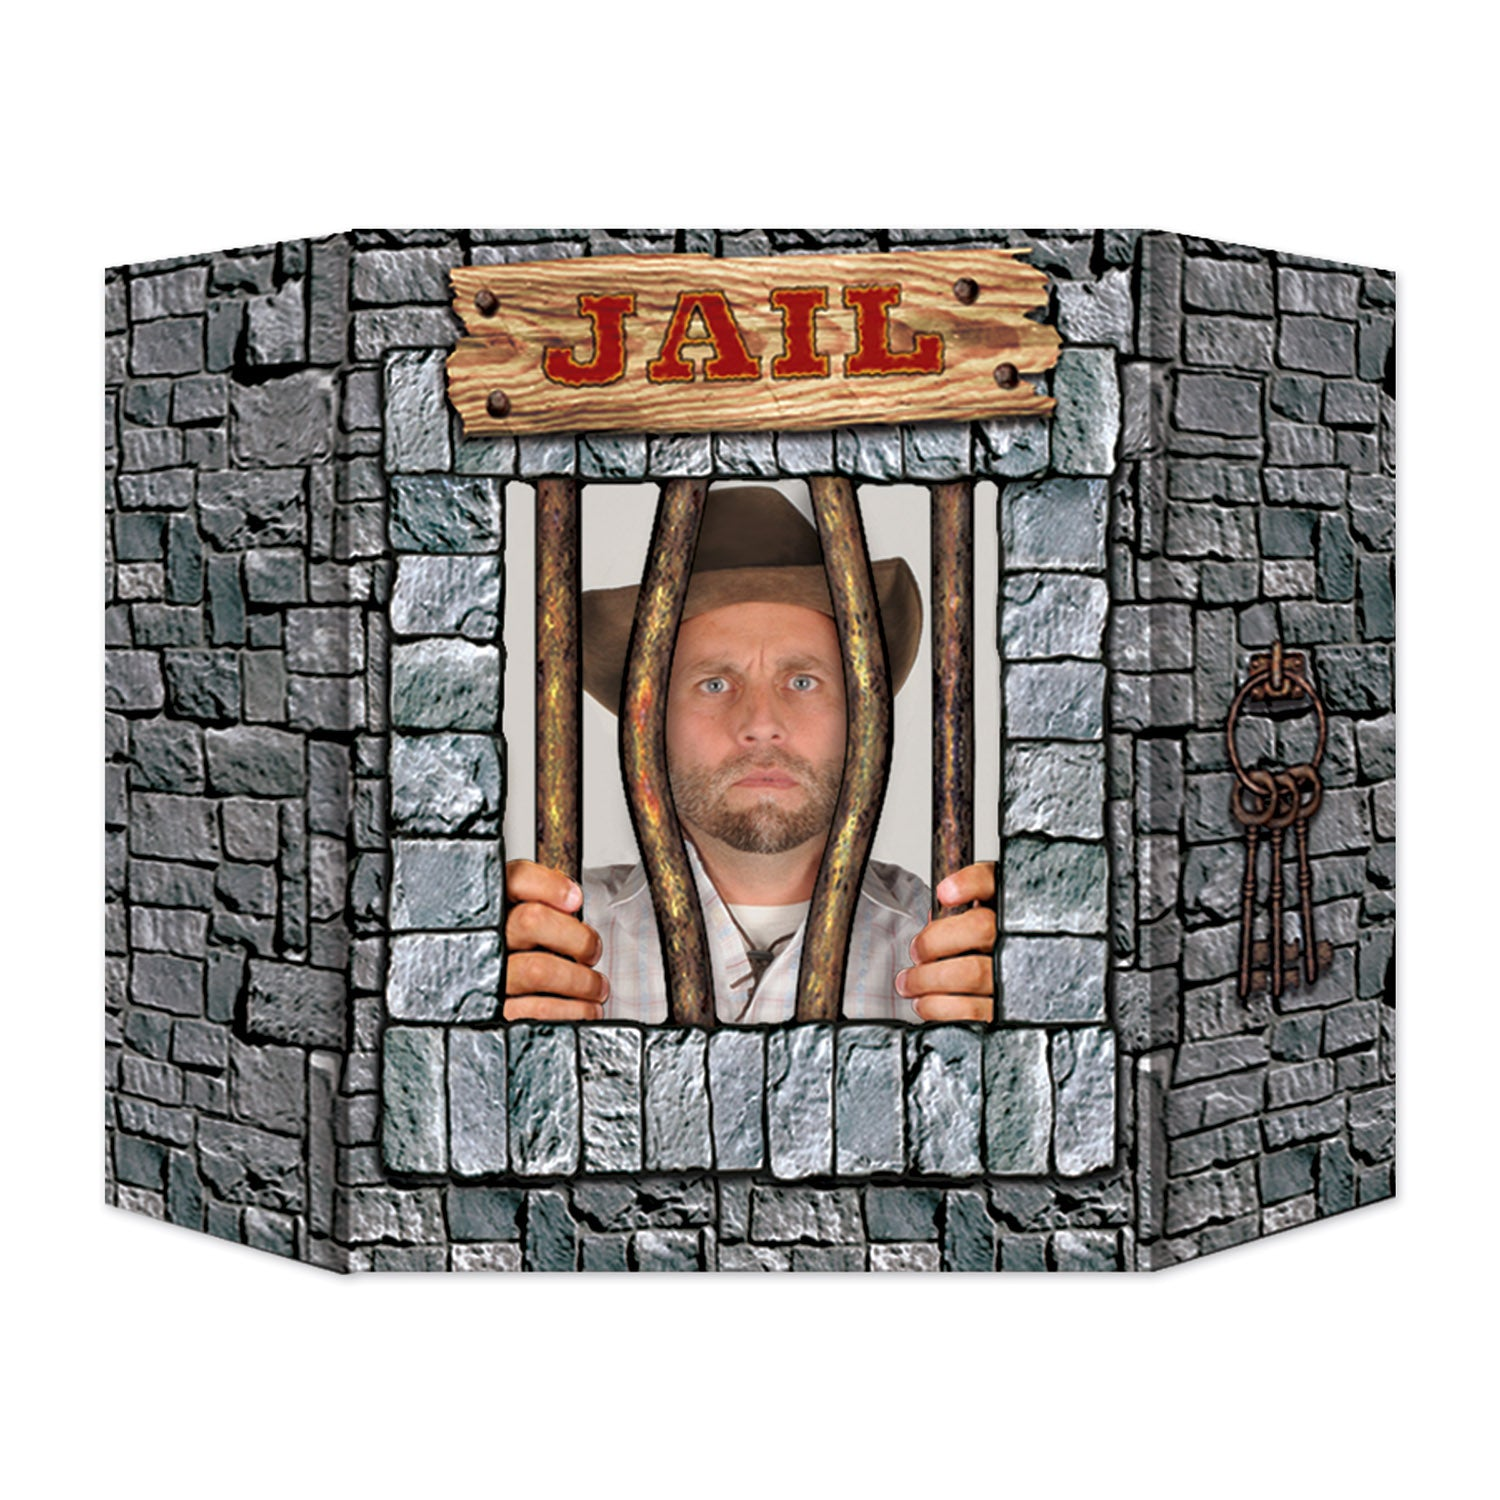 Jail Photo Prop by Beistle - Western Theme Decorations